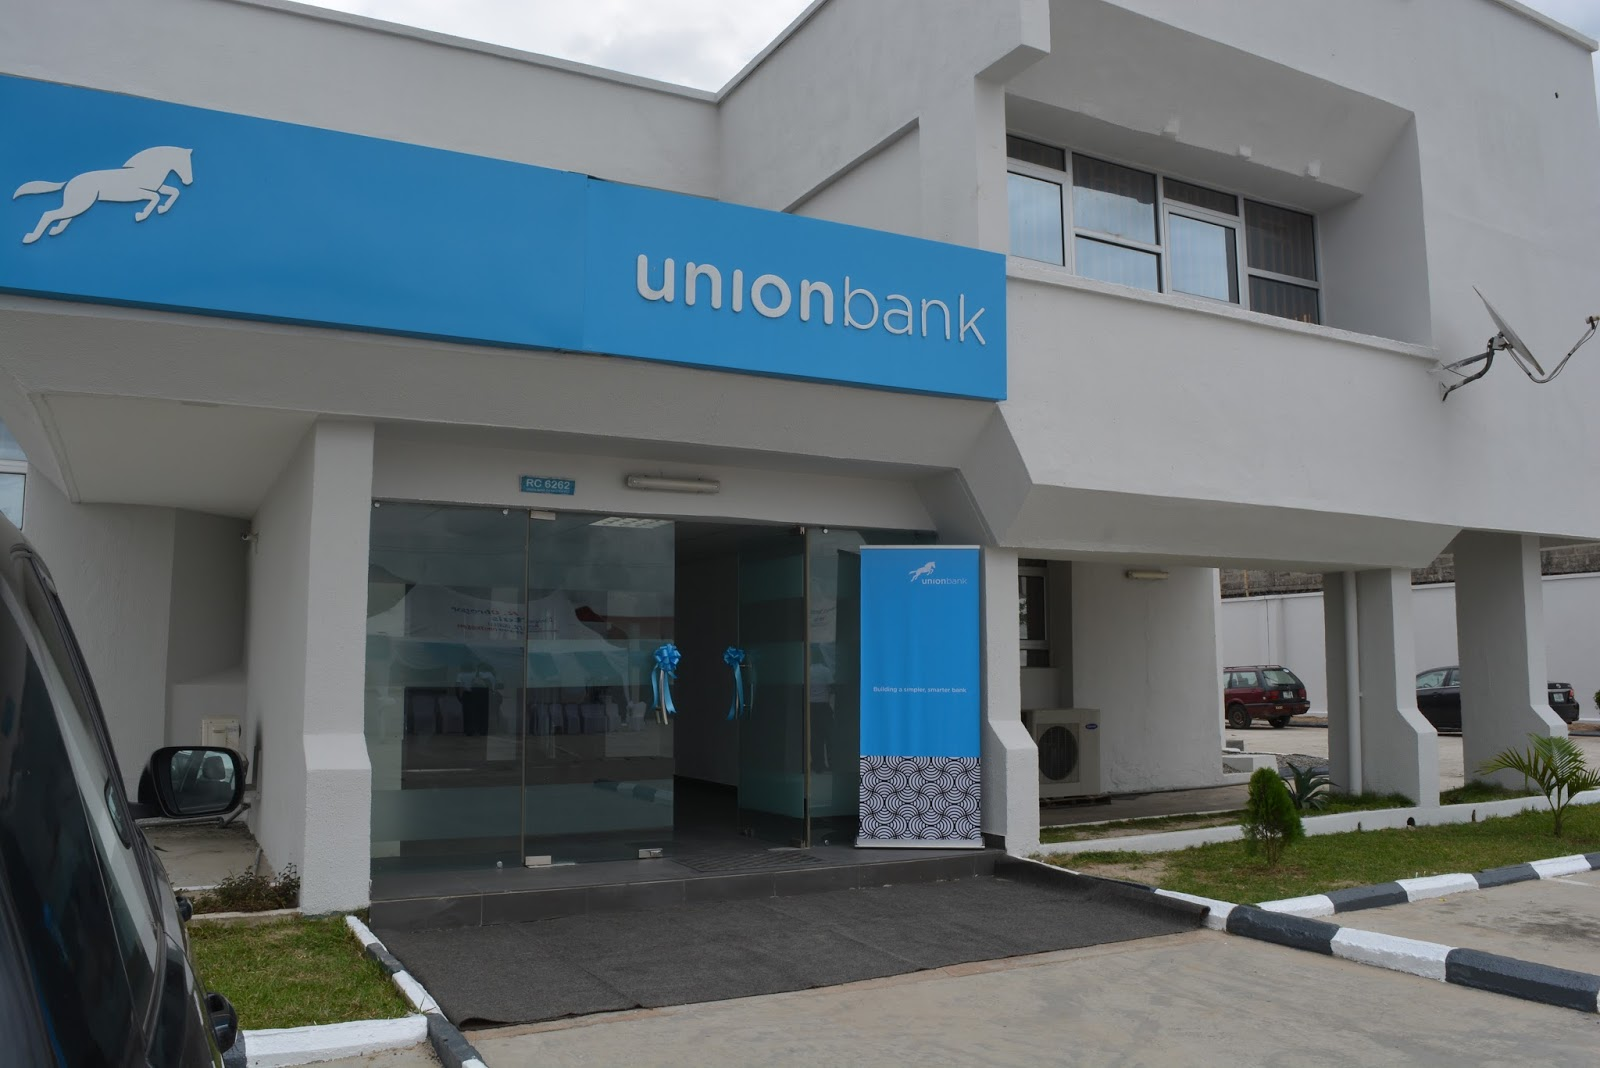 Bob diamond atlas - Bob Diamond S Atlas Mara Set To Up Its Stake In Union Bank Nigeria For 55m Ventures Africa